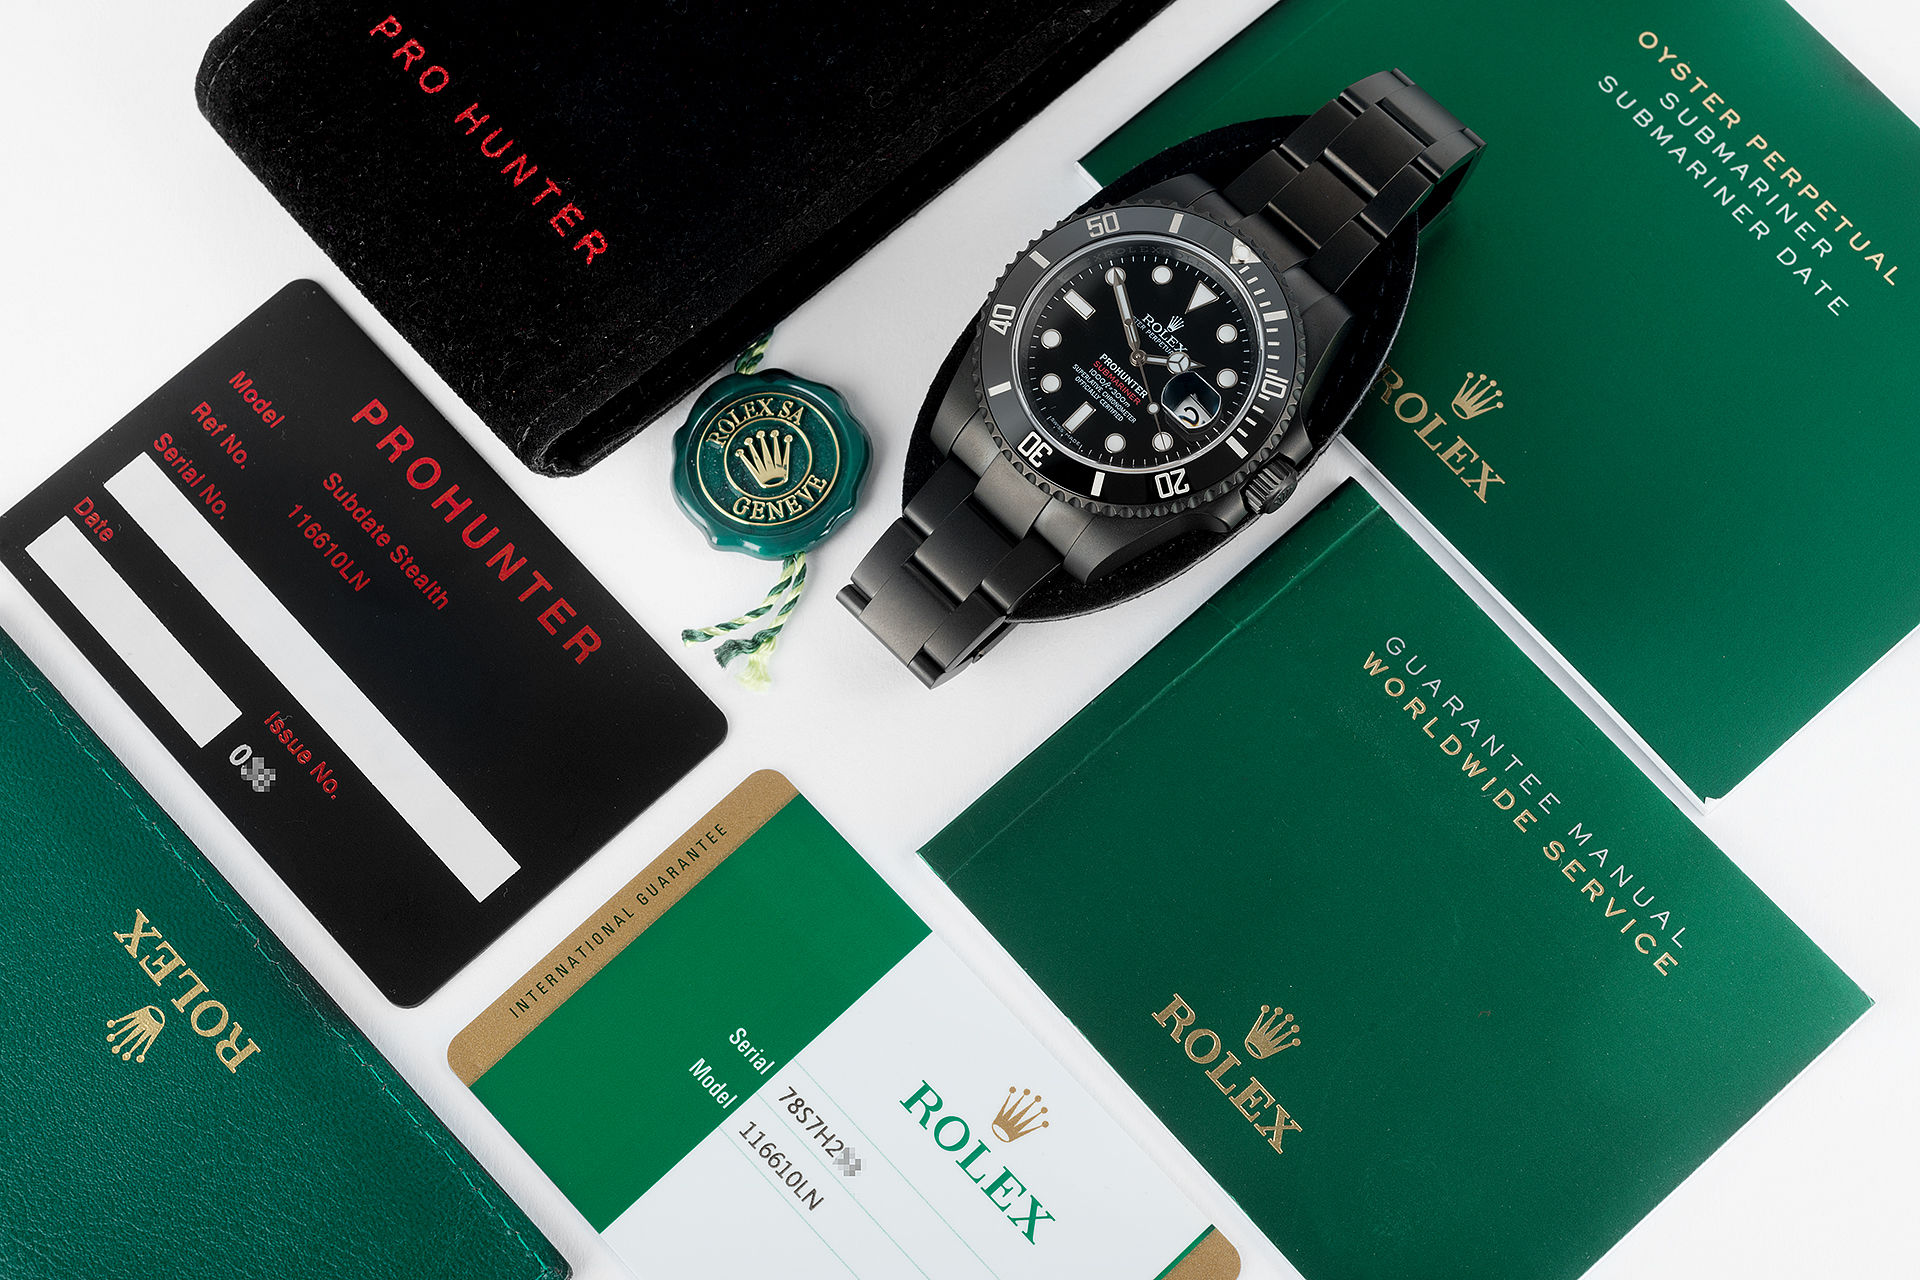 ref 116610LN | Limited Edition 'One of 100' | Pro Hunter Stealth Submariner Date